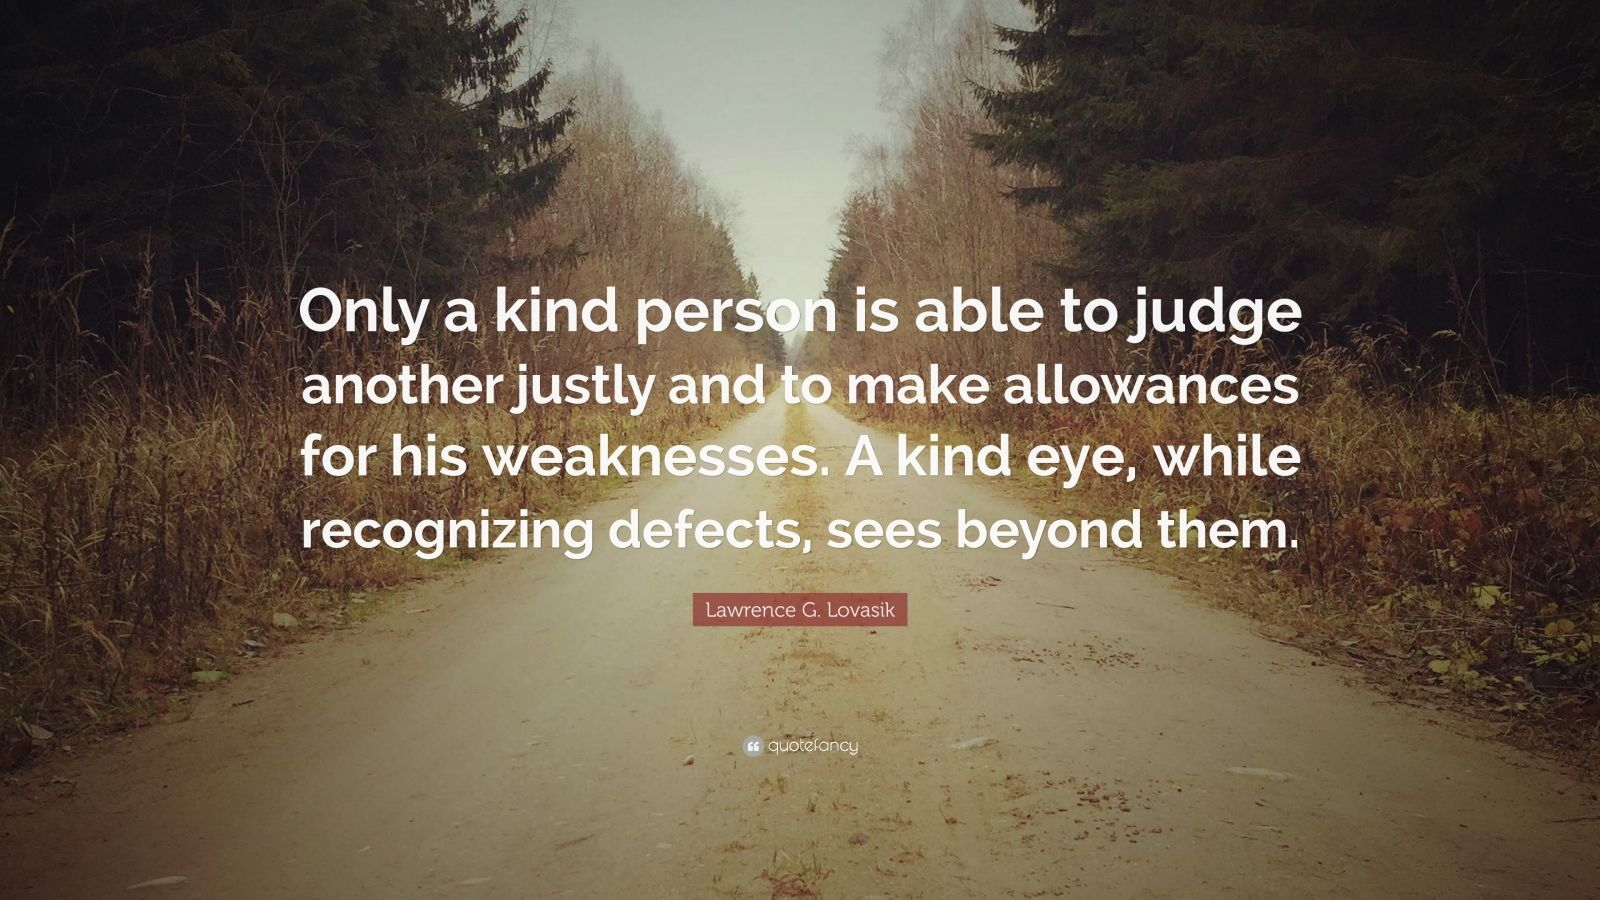 """Lawrence G. Lovasik Quote: """"Only a kind person is able to judge another justly and to make allowances for his weaknesses. A kind eye, while recognizing defects, sees beyond them."""""""